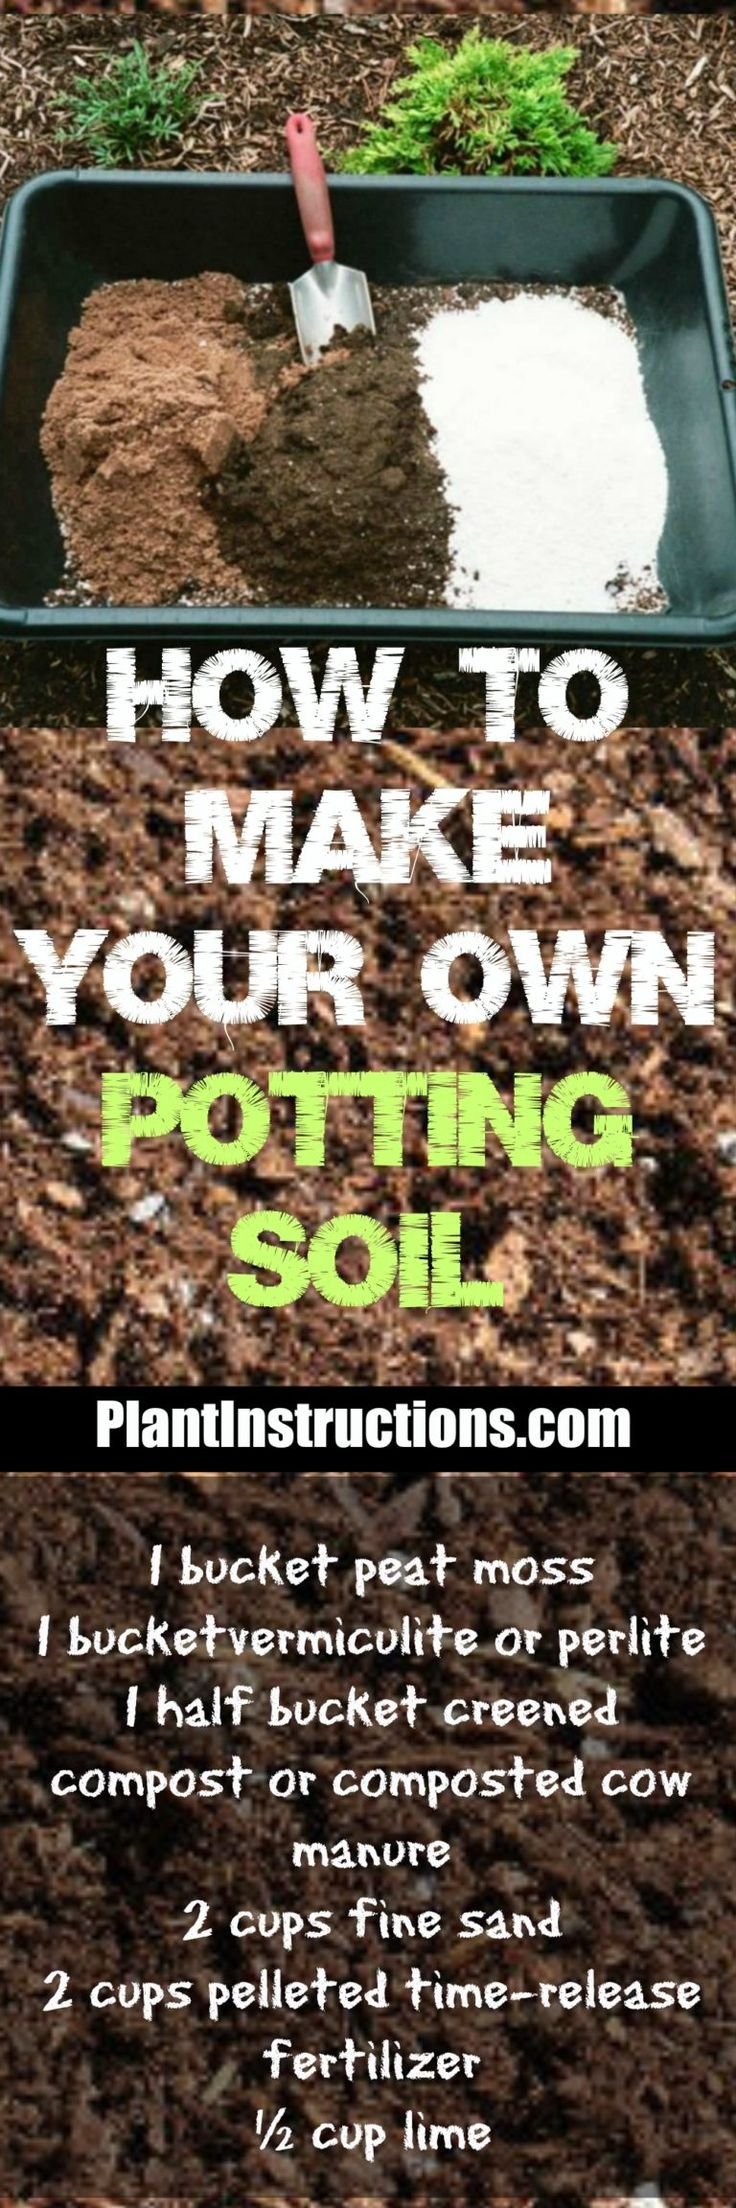 How to Make Potting Soil: DIY Potting Soil | Potting soil, Garden compost, Garden soil